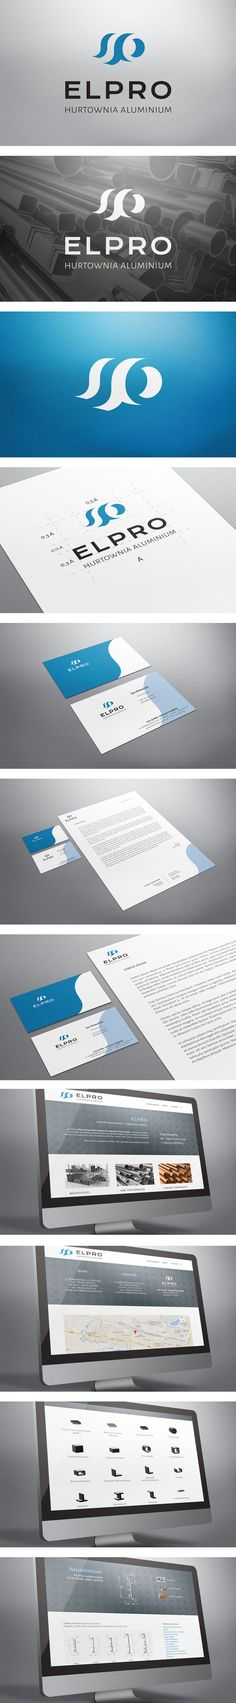 Corporate Identity for ELPRO company. Project included brand new logo and cohesive print and web design: business cards, letterhead and website.